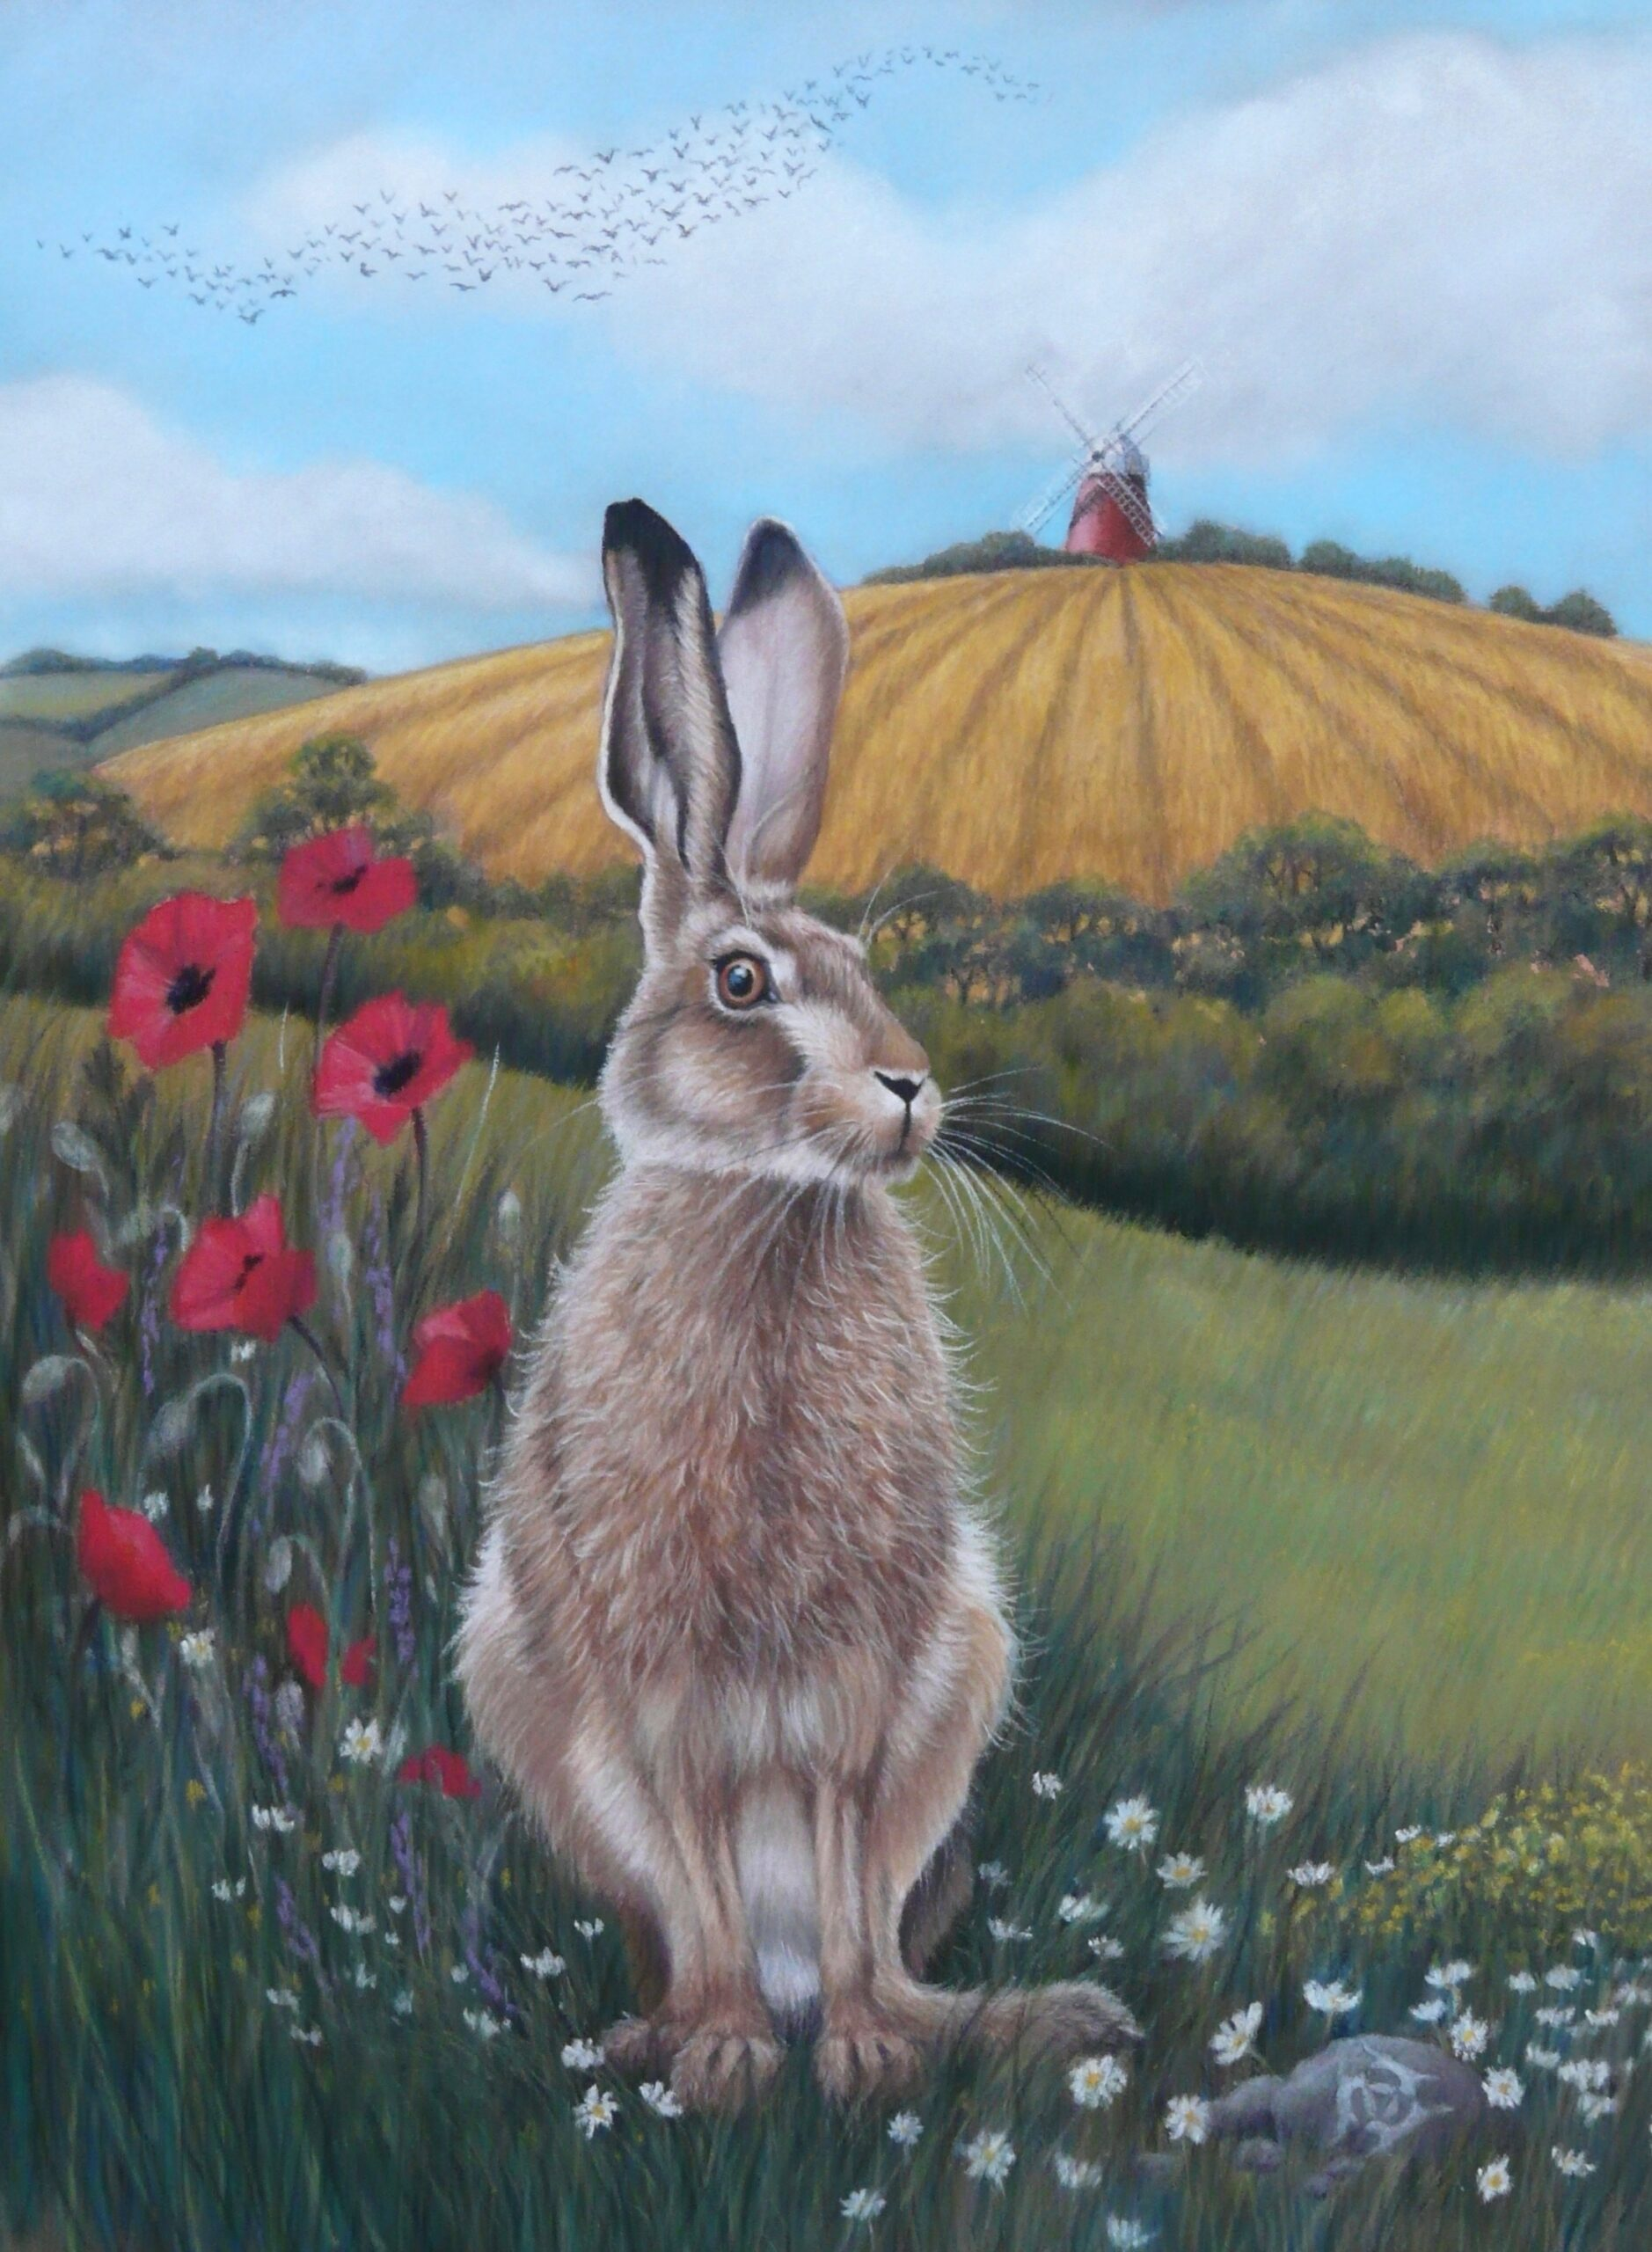 """Hare at Halnaker"" By Kerry Vaughan Unframed Limited edition giclee print of 50. Fits frame 1""Hare at Halnaker"" By Kerry Vaughan Unframed Limited edition giclee print of 50. Fits frame 11"" x14"". £40 plus p&p1"" x14"". £40 plus p&p"